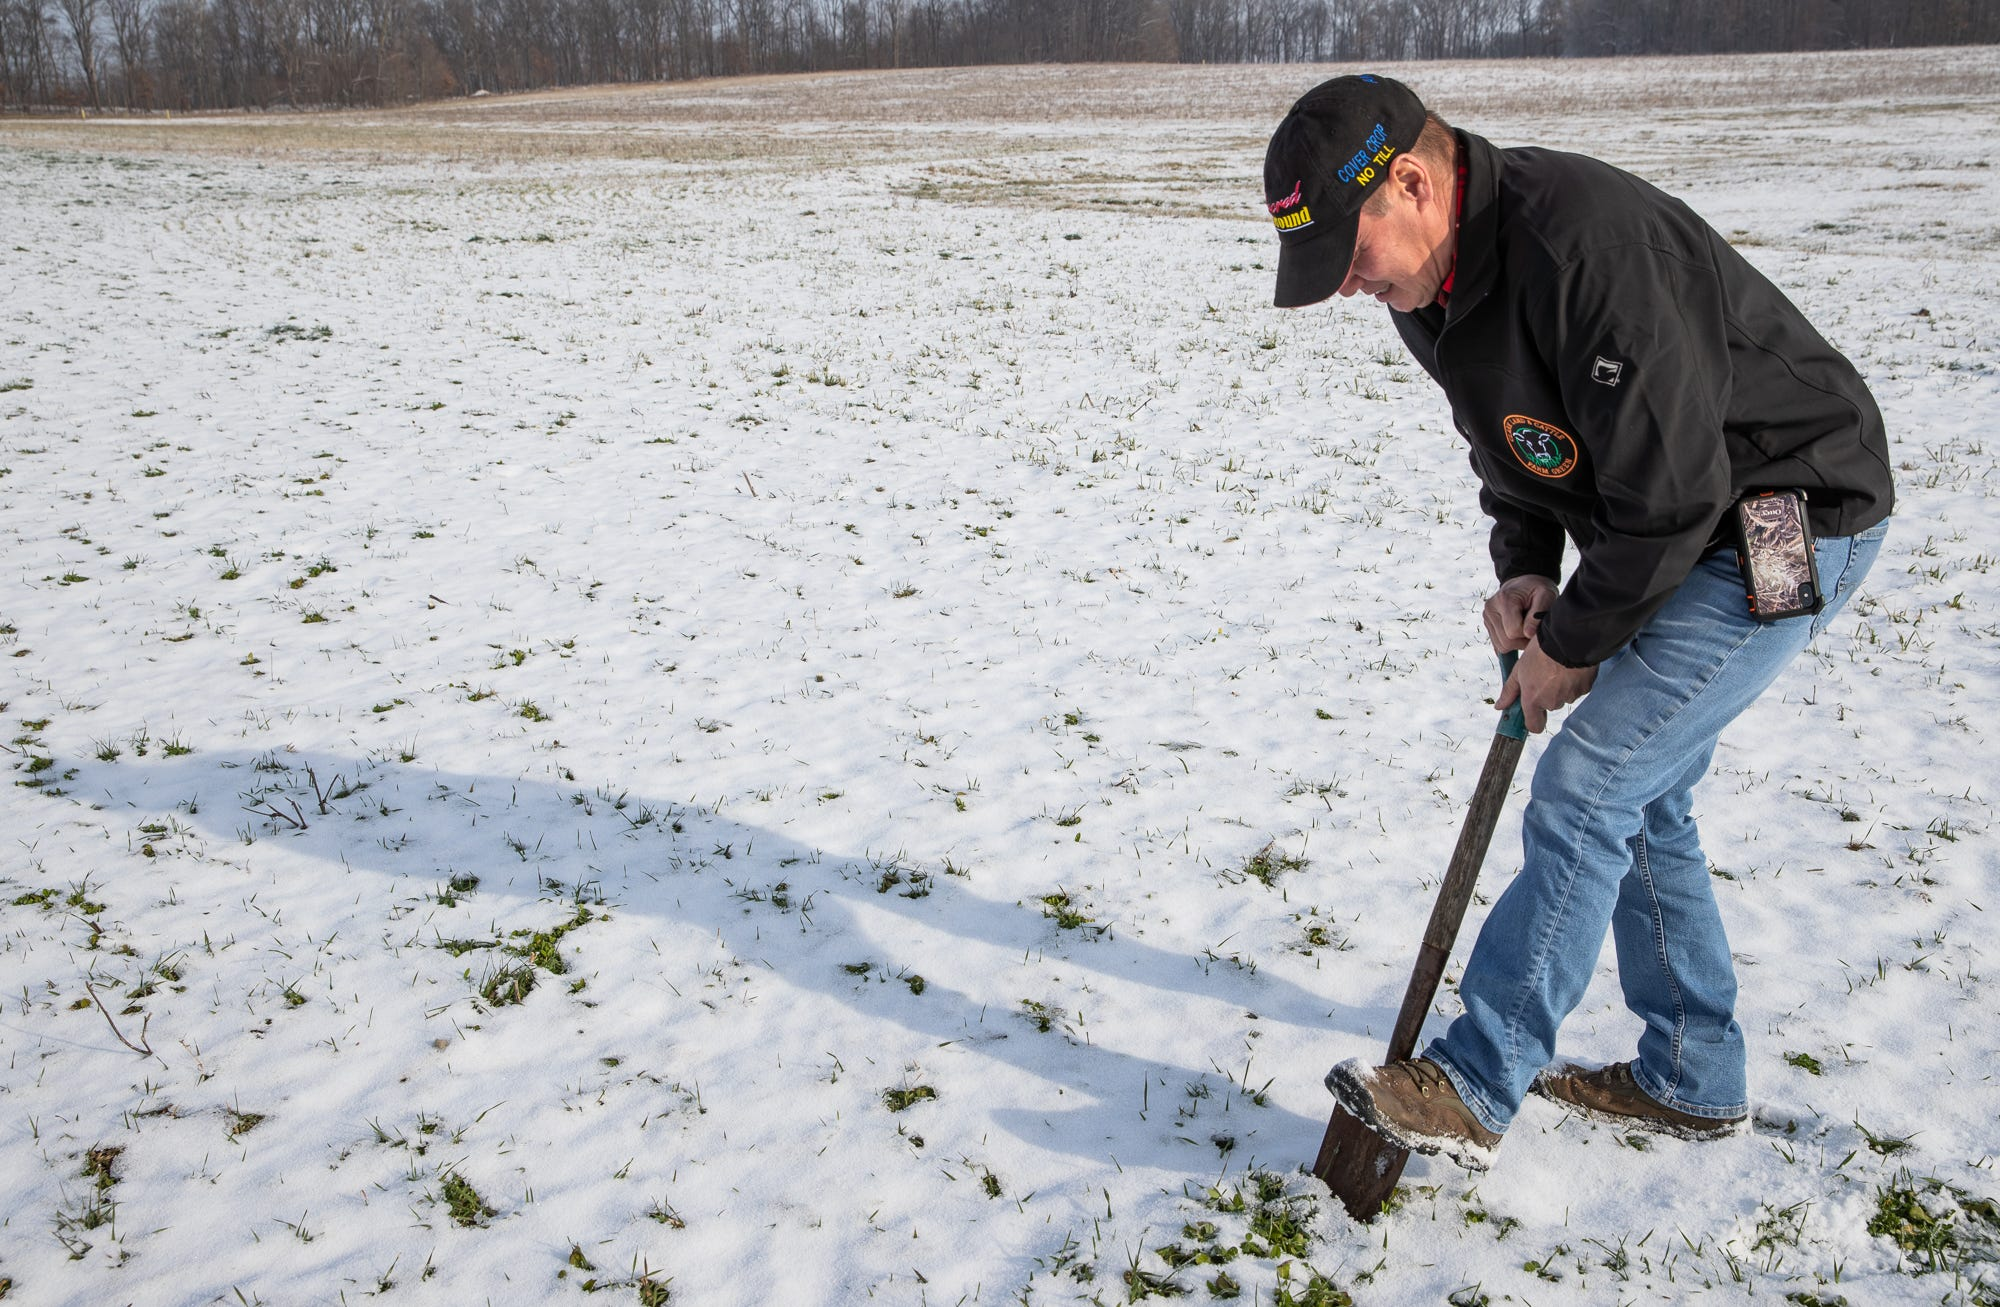 With snow on the ground on a chill day, farmer Rick Clark digs up a small batch of dirt from his field to see if he can find any earthworms at his farm in Williamsport, Ind., on Friday, Dec. 18, 2020. Clark is a regenerative agriculture farmer, focusing on soil health and removes chemicals and fertilizer from his fields.